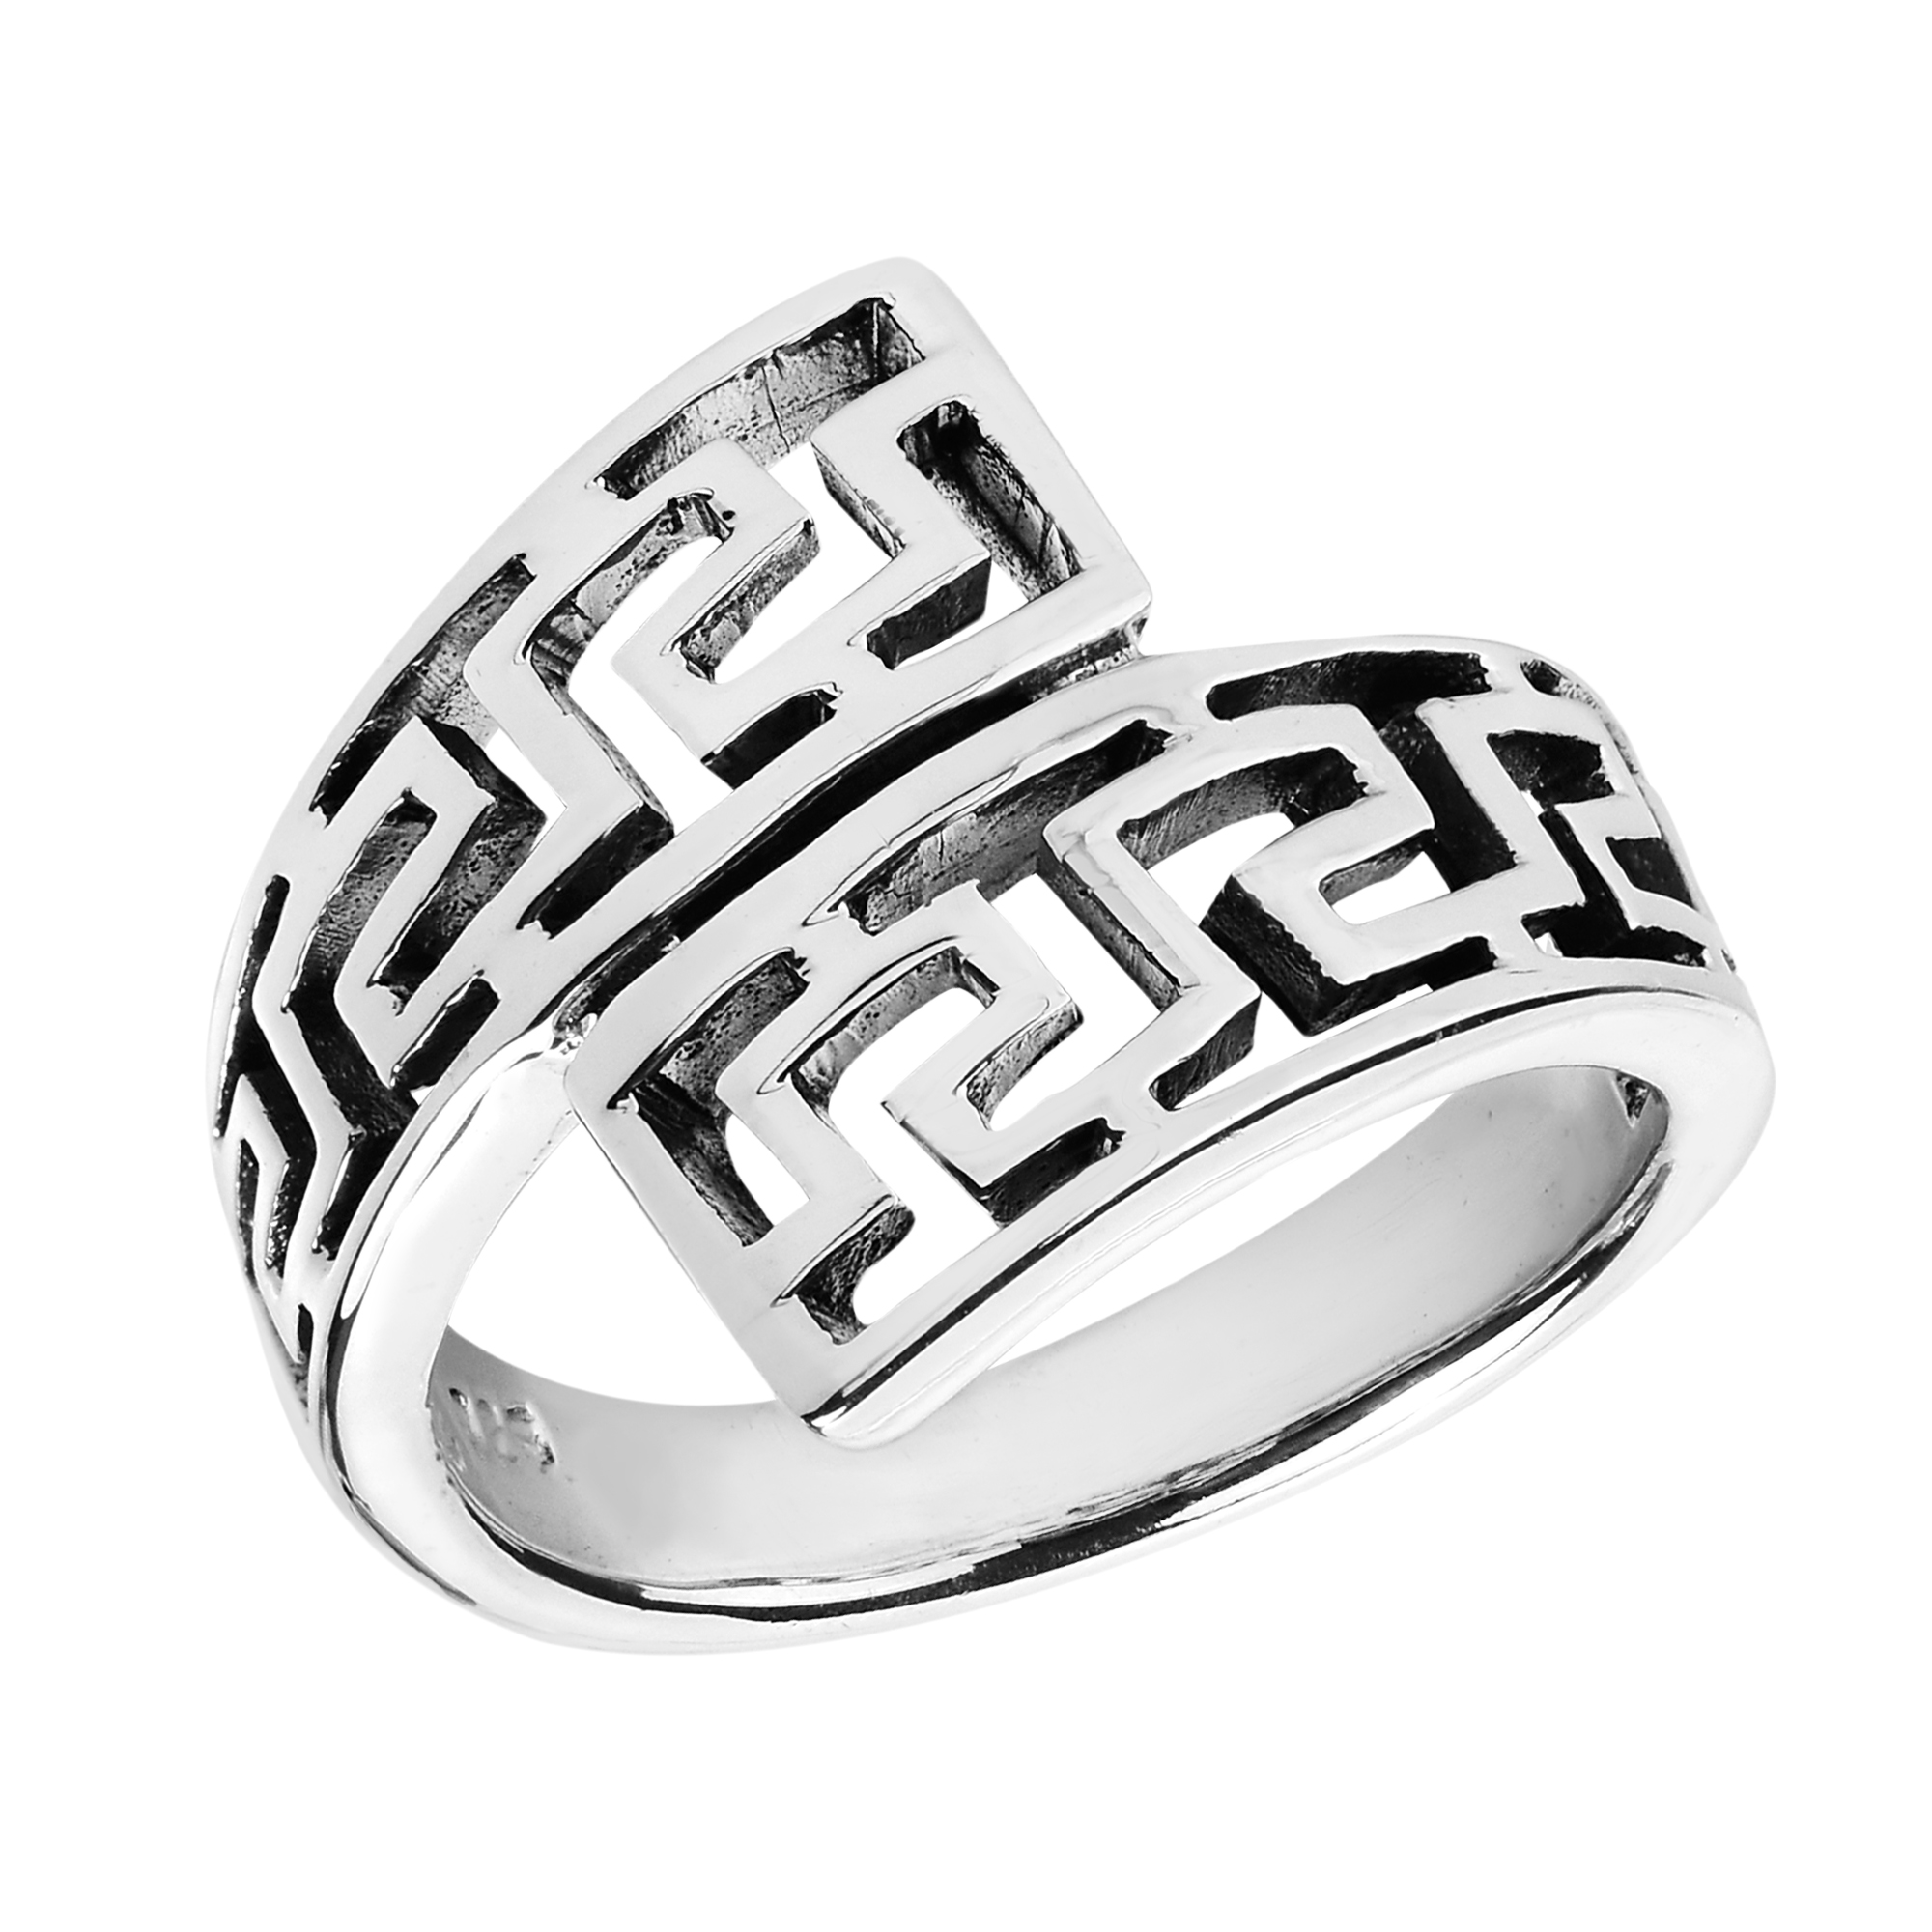 han of skullofzeusringzeusringgodringgreekgodring ring skull rings series god products engagement shadow greek cholo z zeus